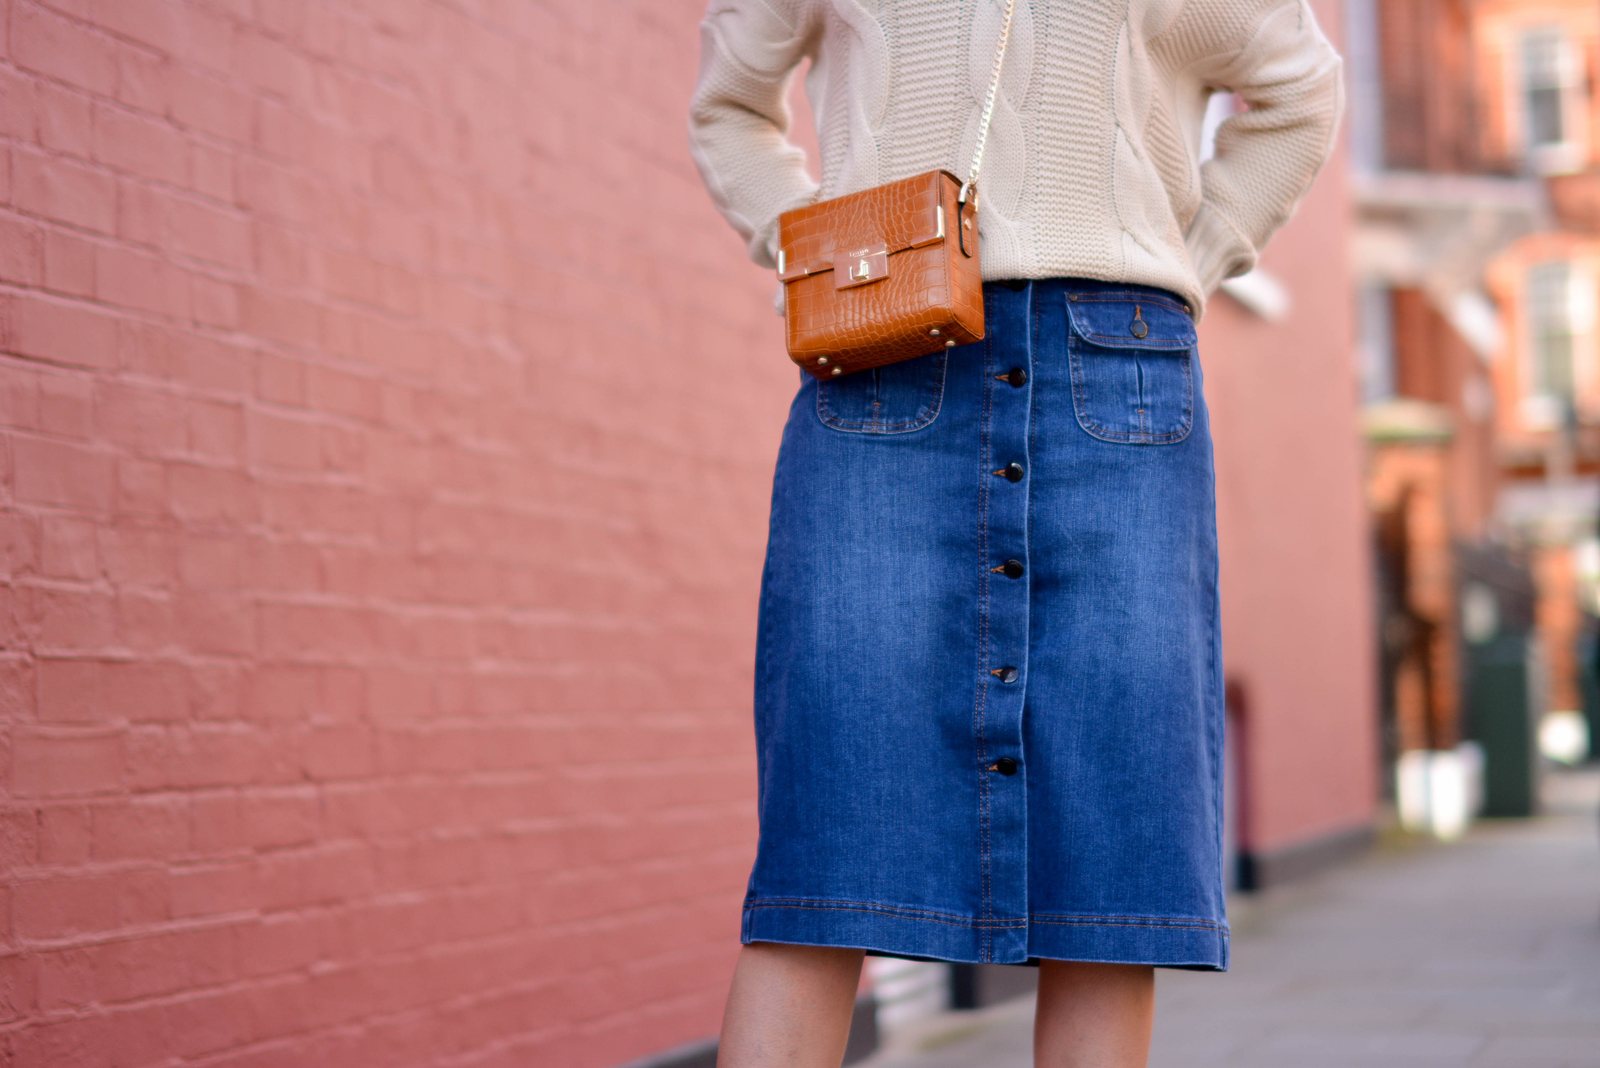 EJSTYLE-Emma-Hill-70s-style-london-street-style-LFW-AW15-MS-denim-a-line-skirt-off-shoulder-cable-knit-jumper-Dune-box-bag-tan.. - Cópia